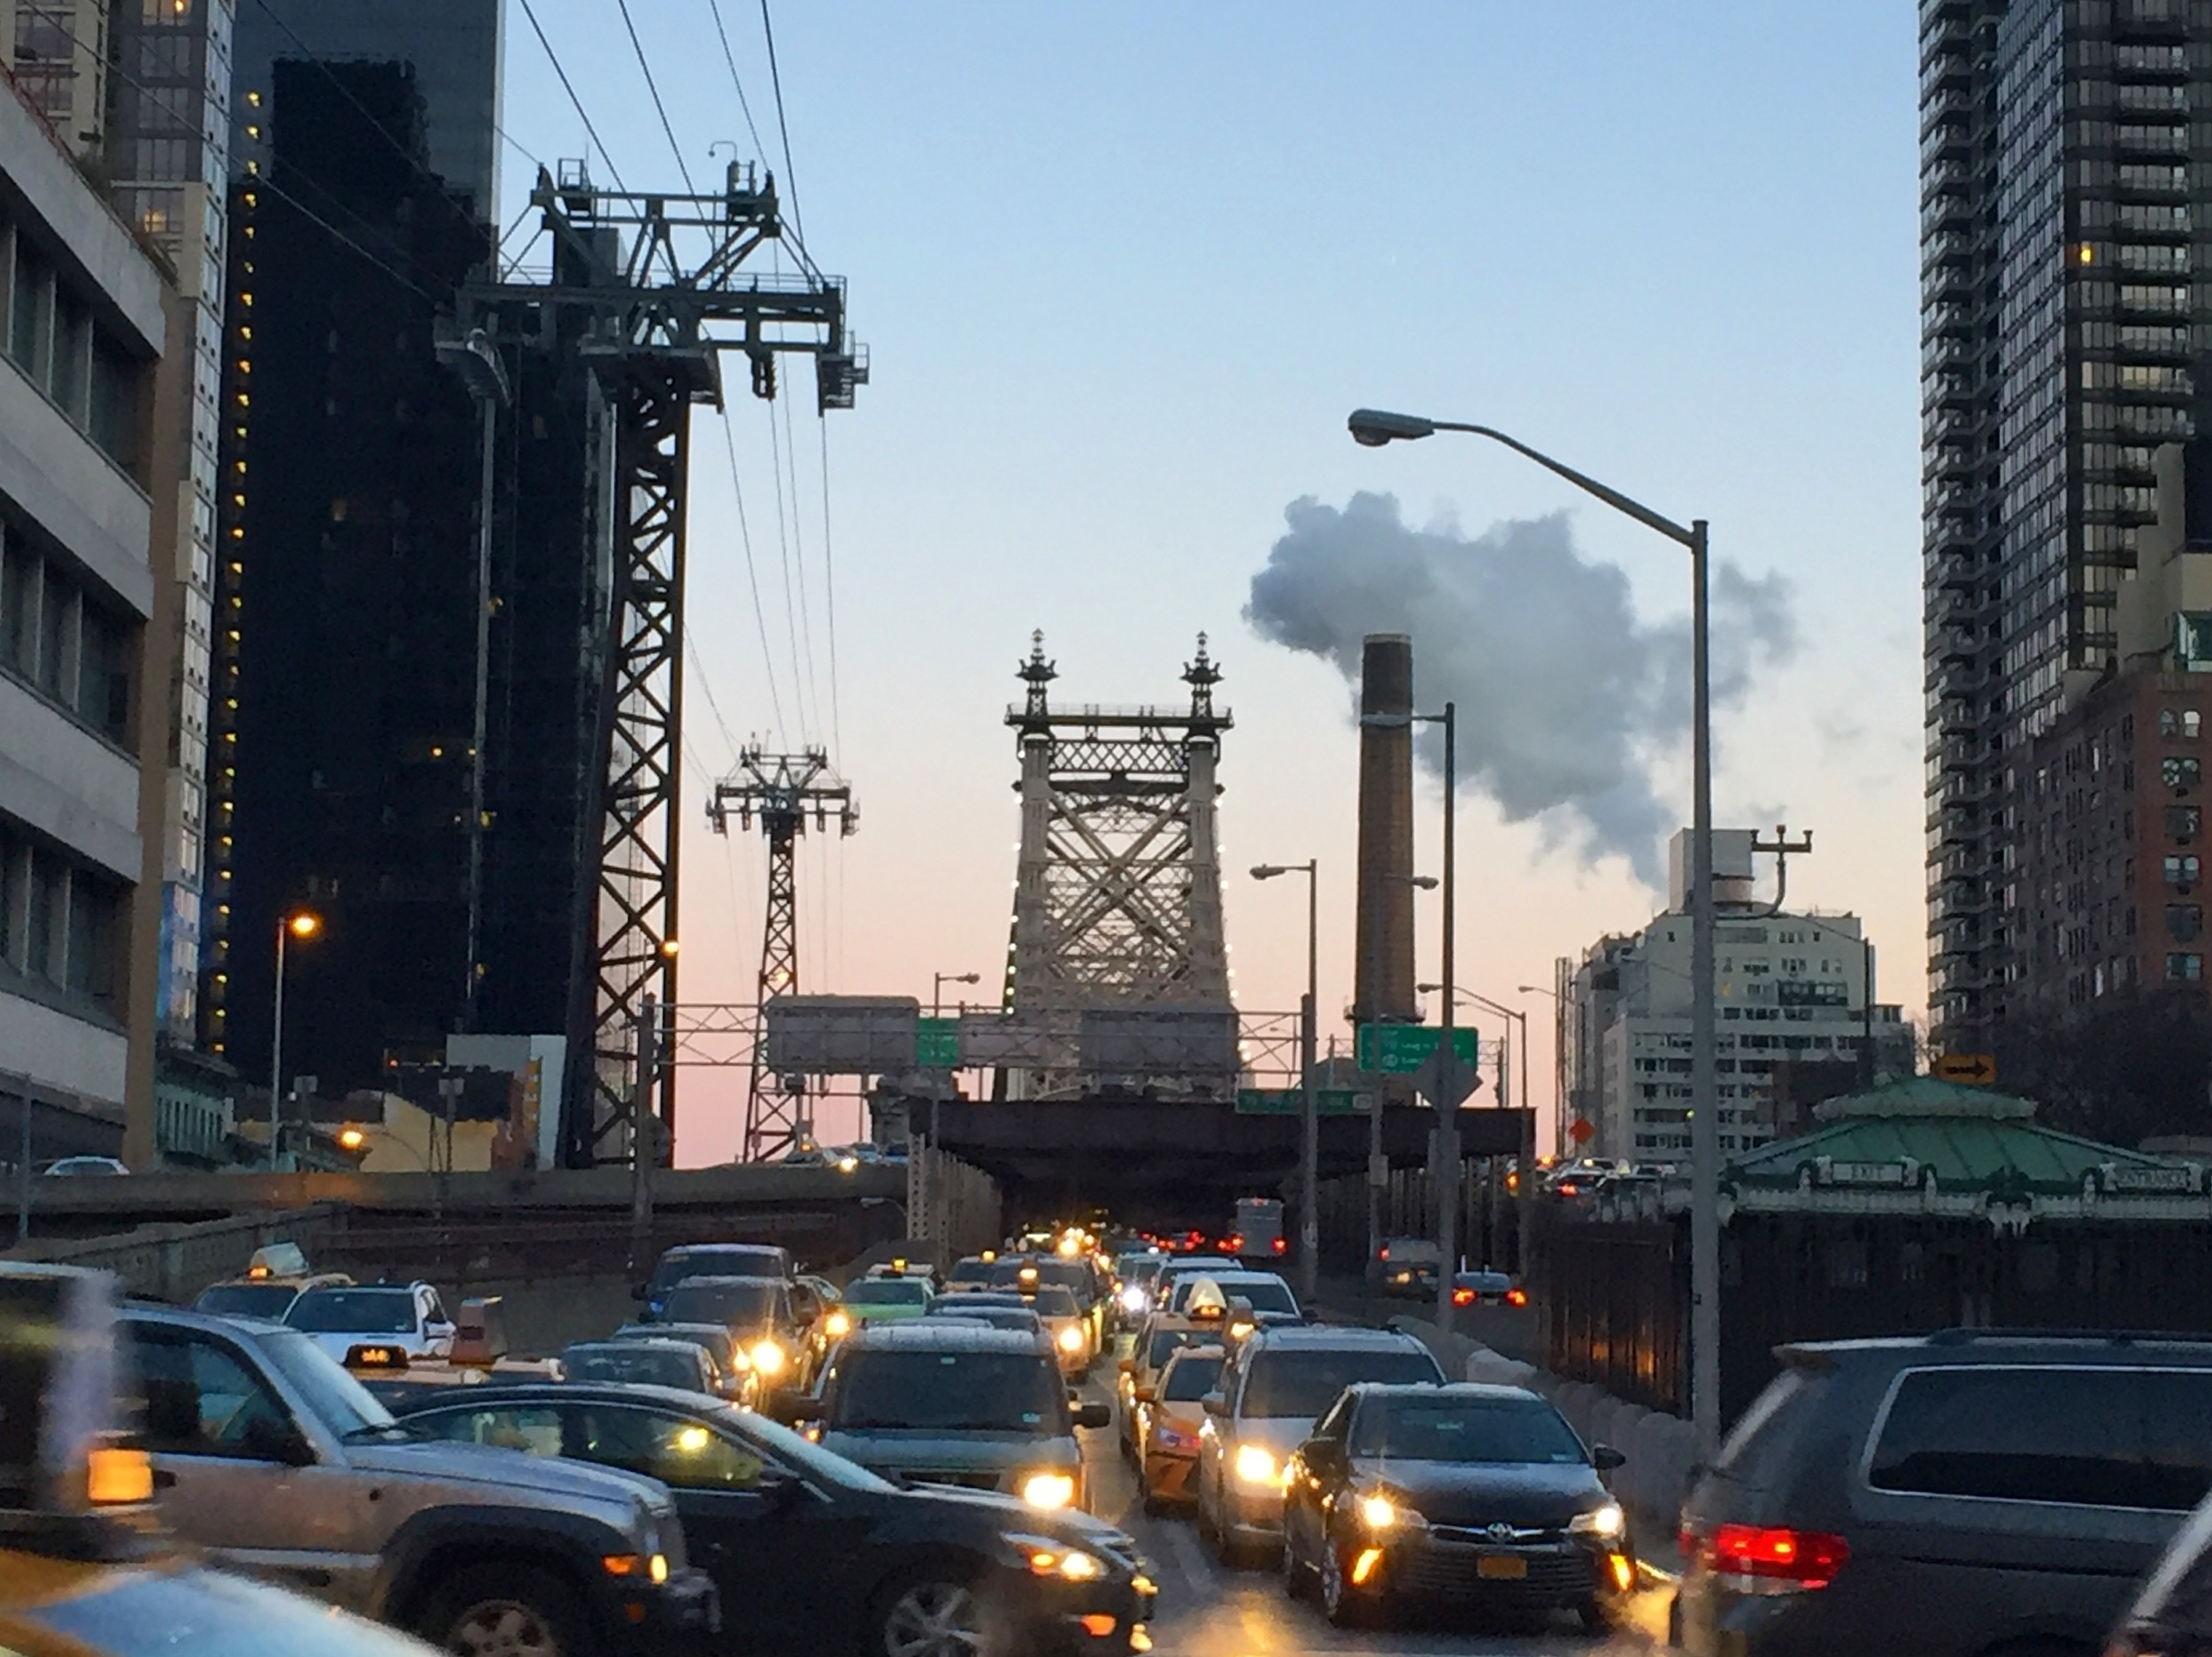 Industrialized traffic city: how I imagined all of New York to feel.